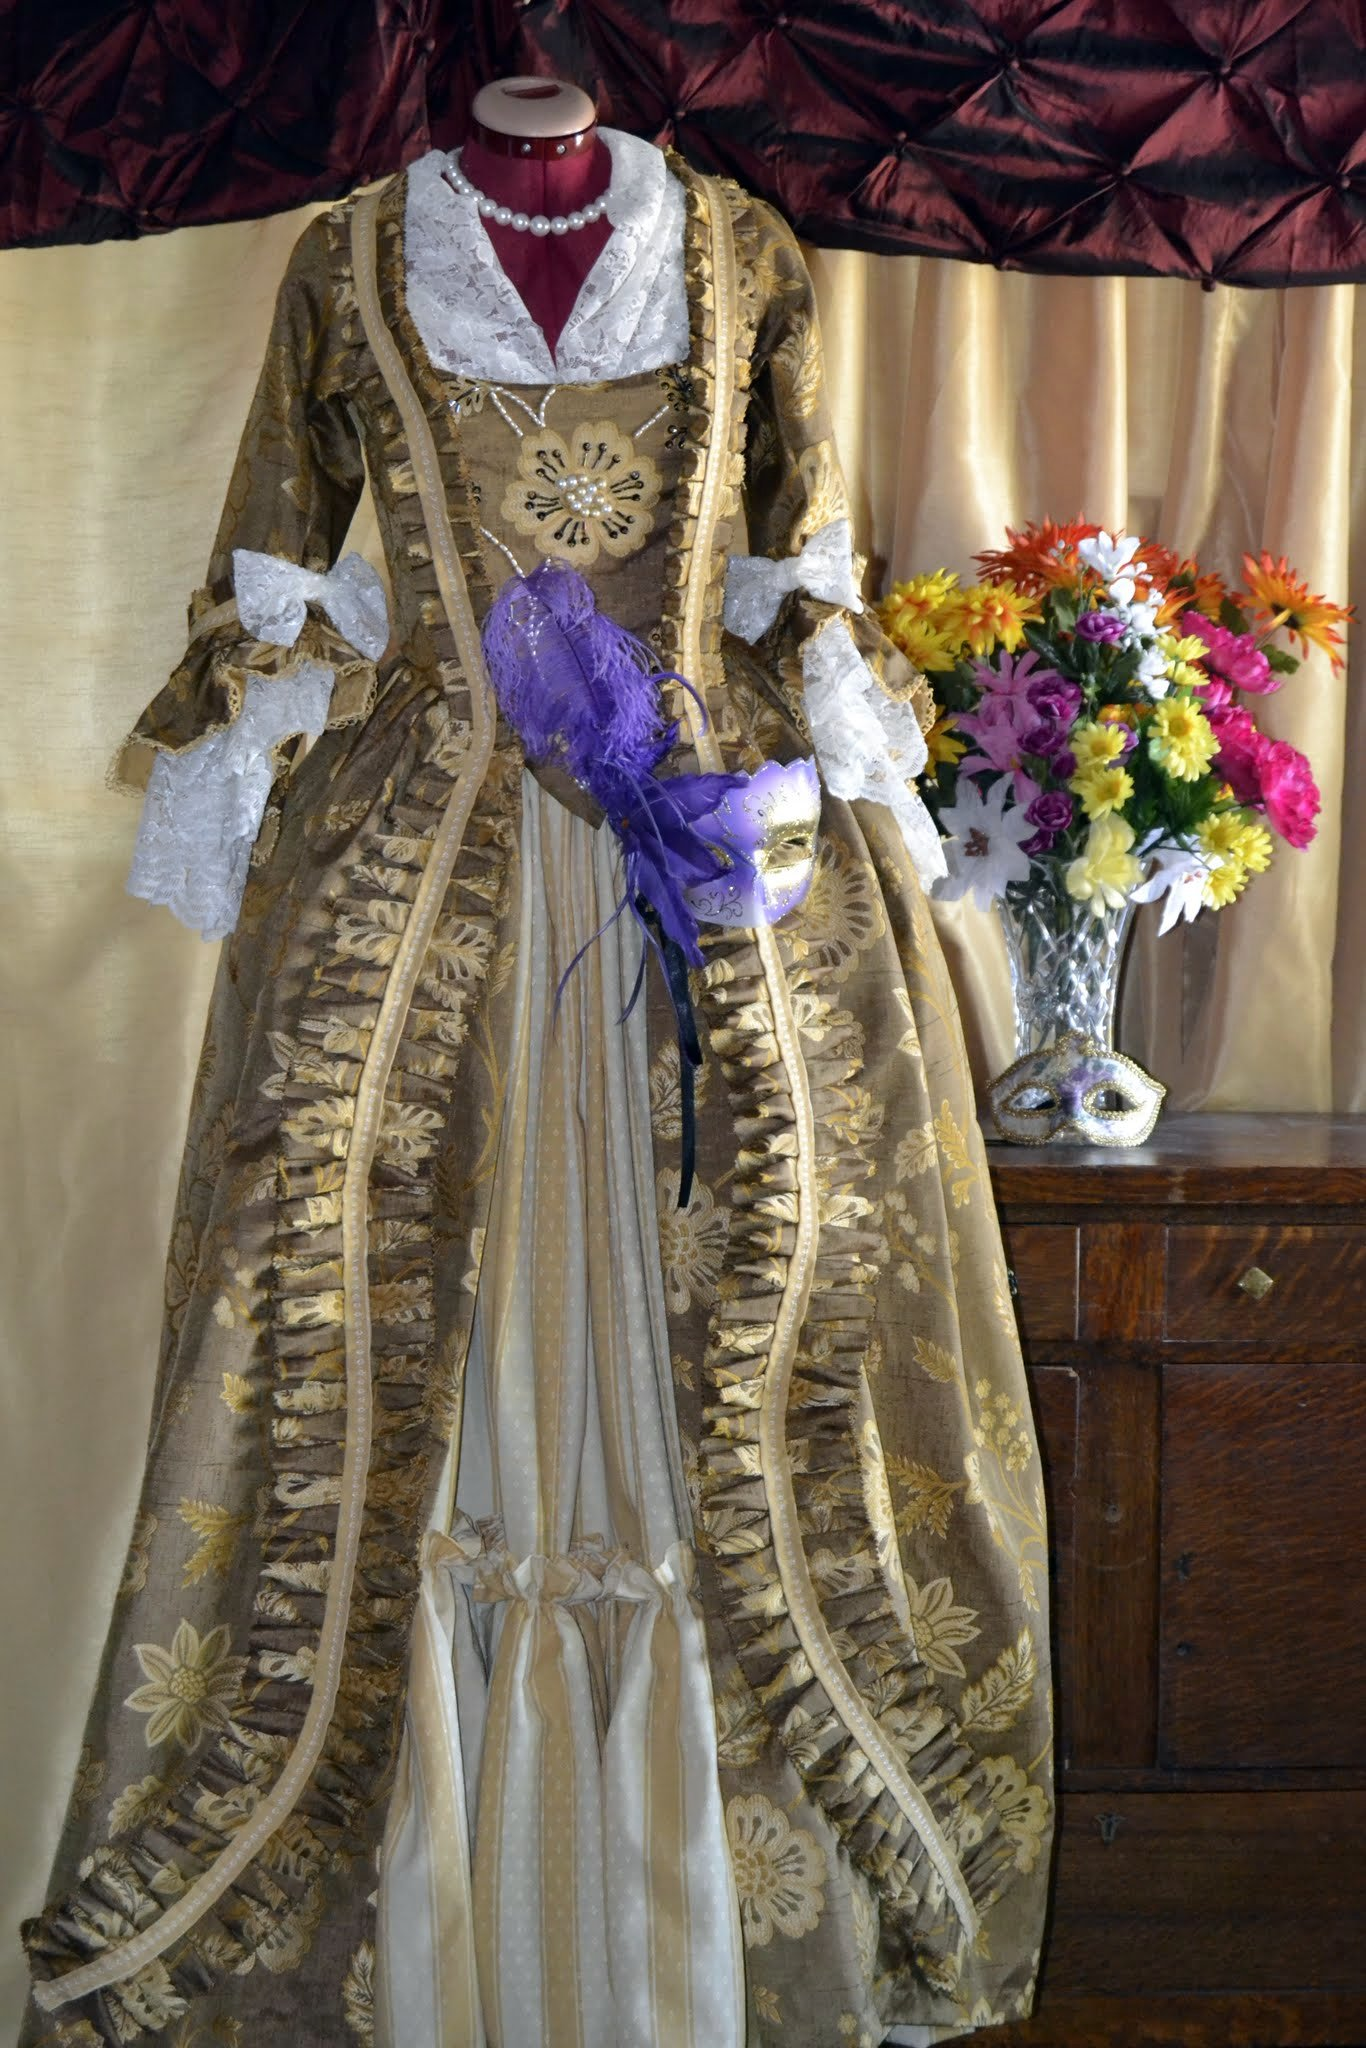 Robe du xviii siecle